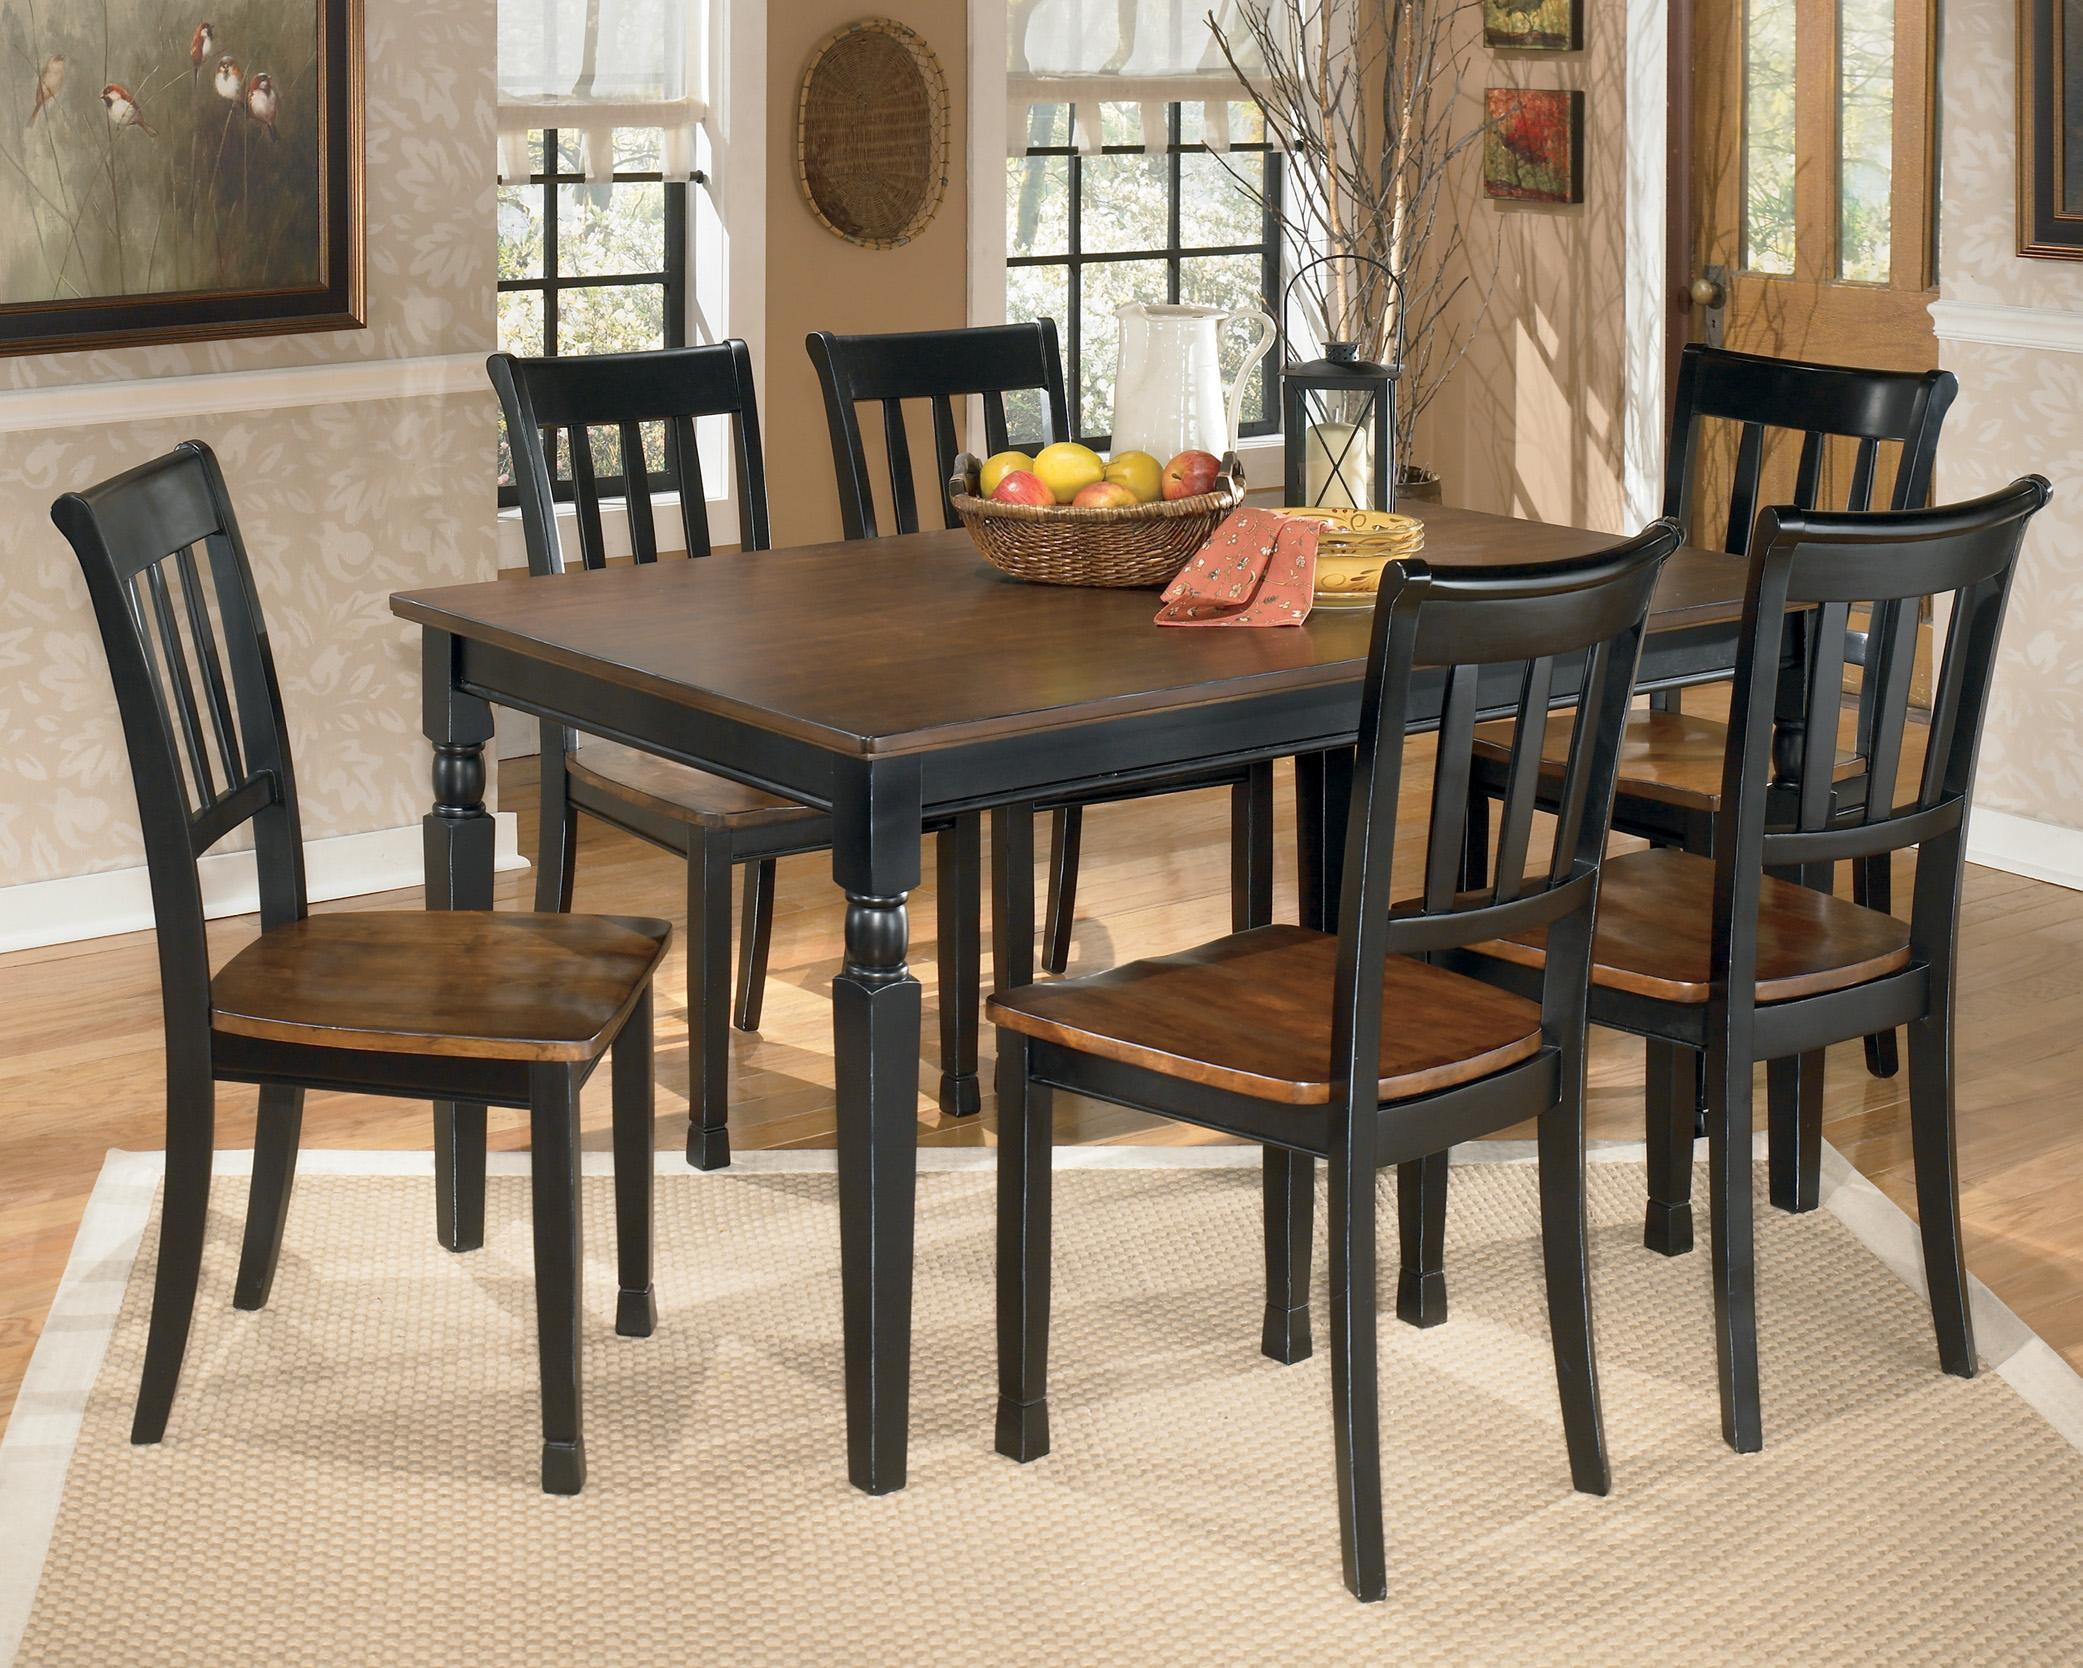 Signature Design by Ashley Owingsville 7-Piece Rectangular Dining Table Set - Item Number: D580-25+6x02